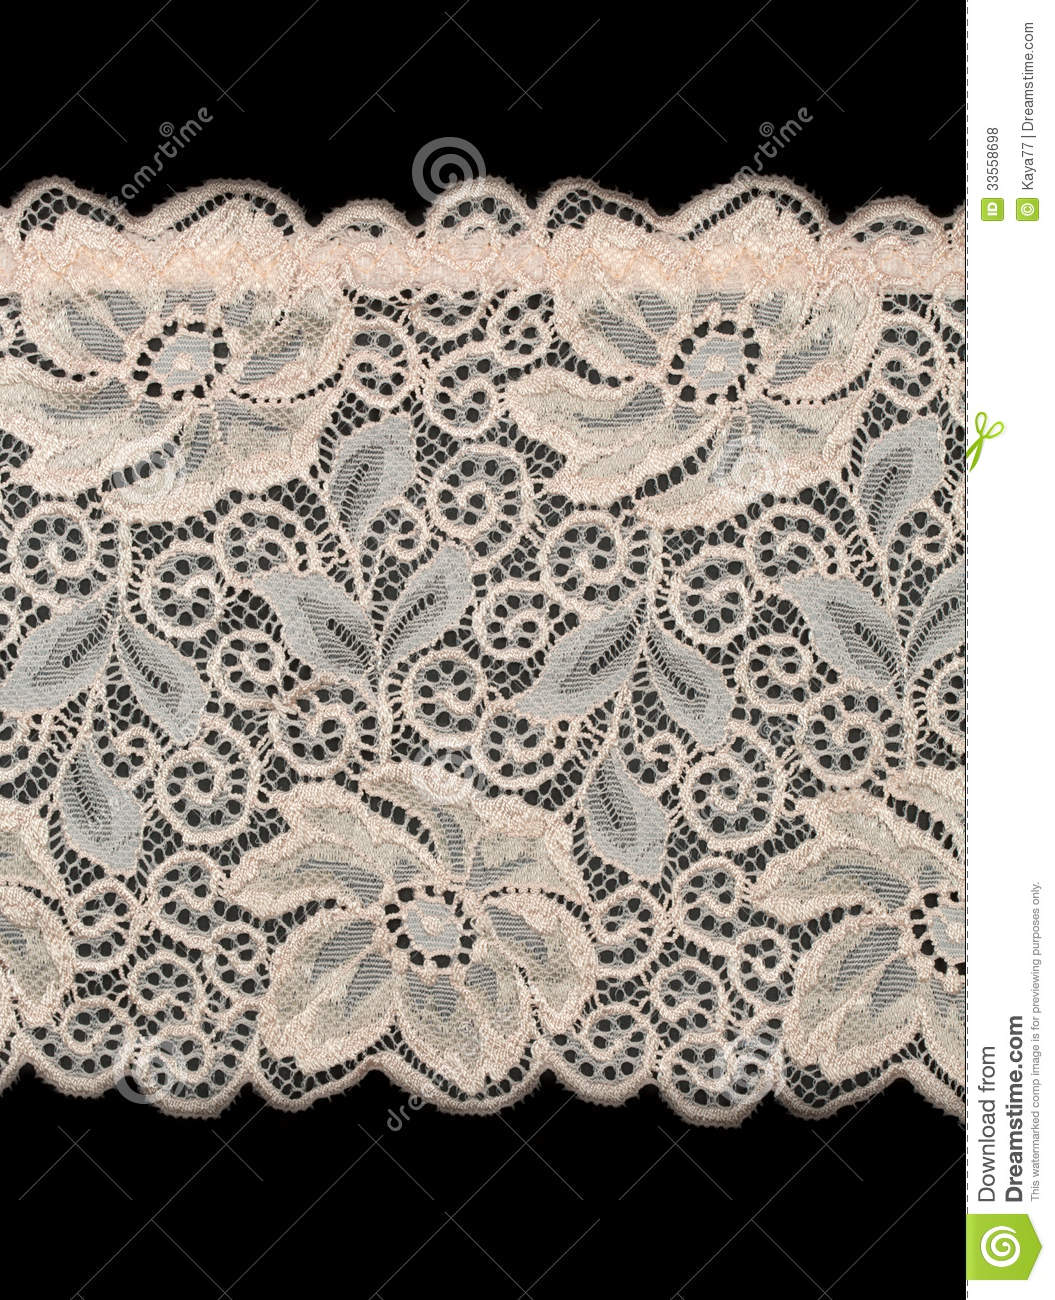 Black Flower And Bud Pattern Royalty Free Stock Photos: Beige Lace With A Pattern Of Large Flowers Royalty Free